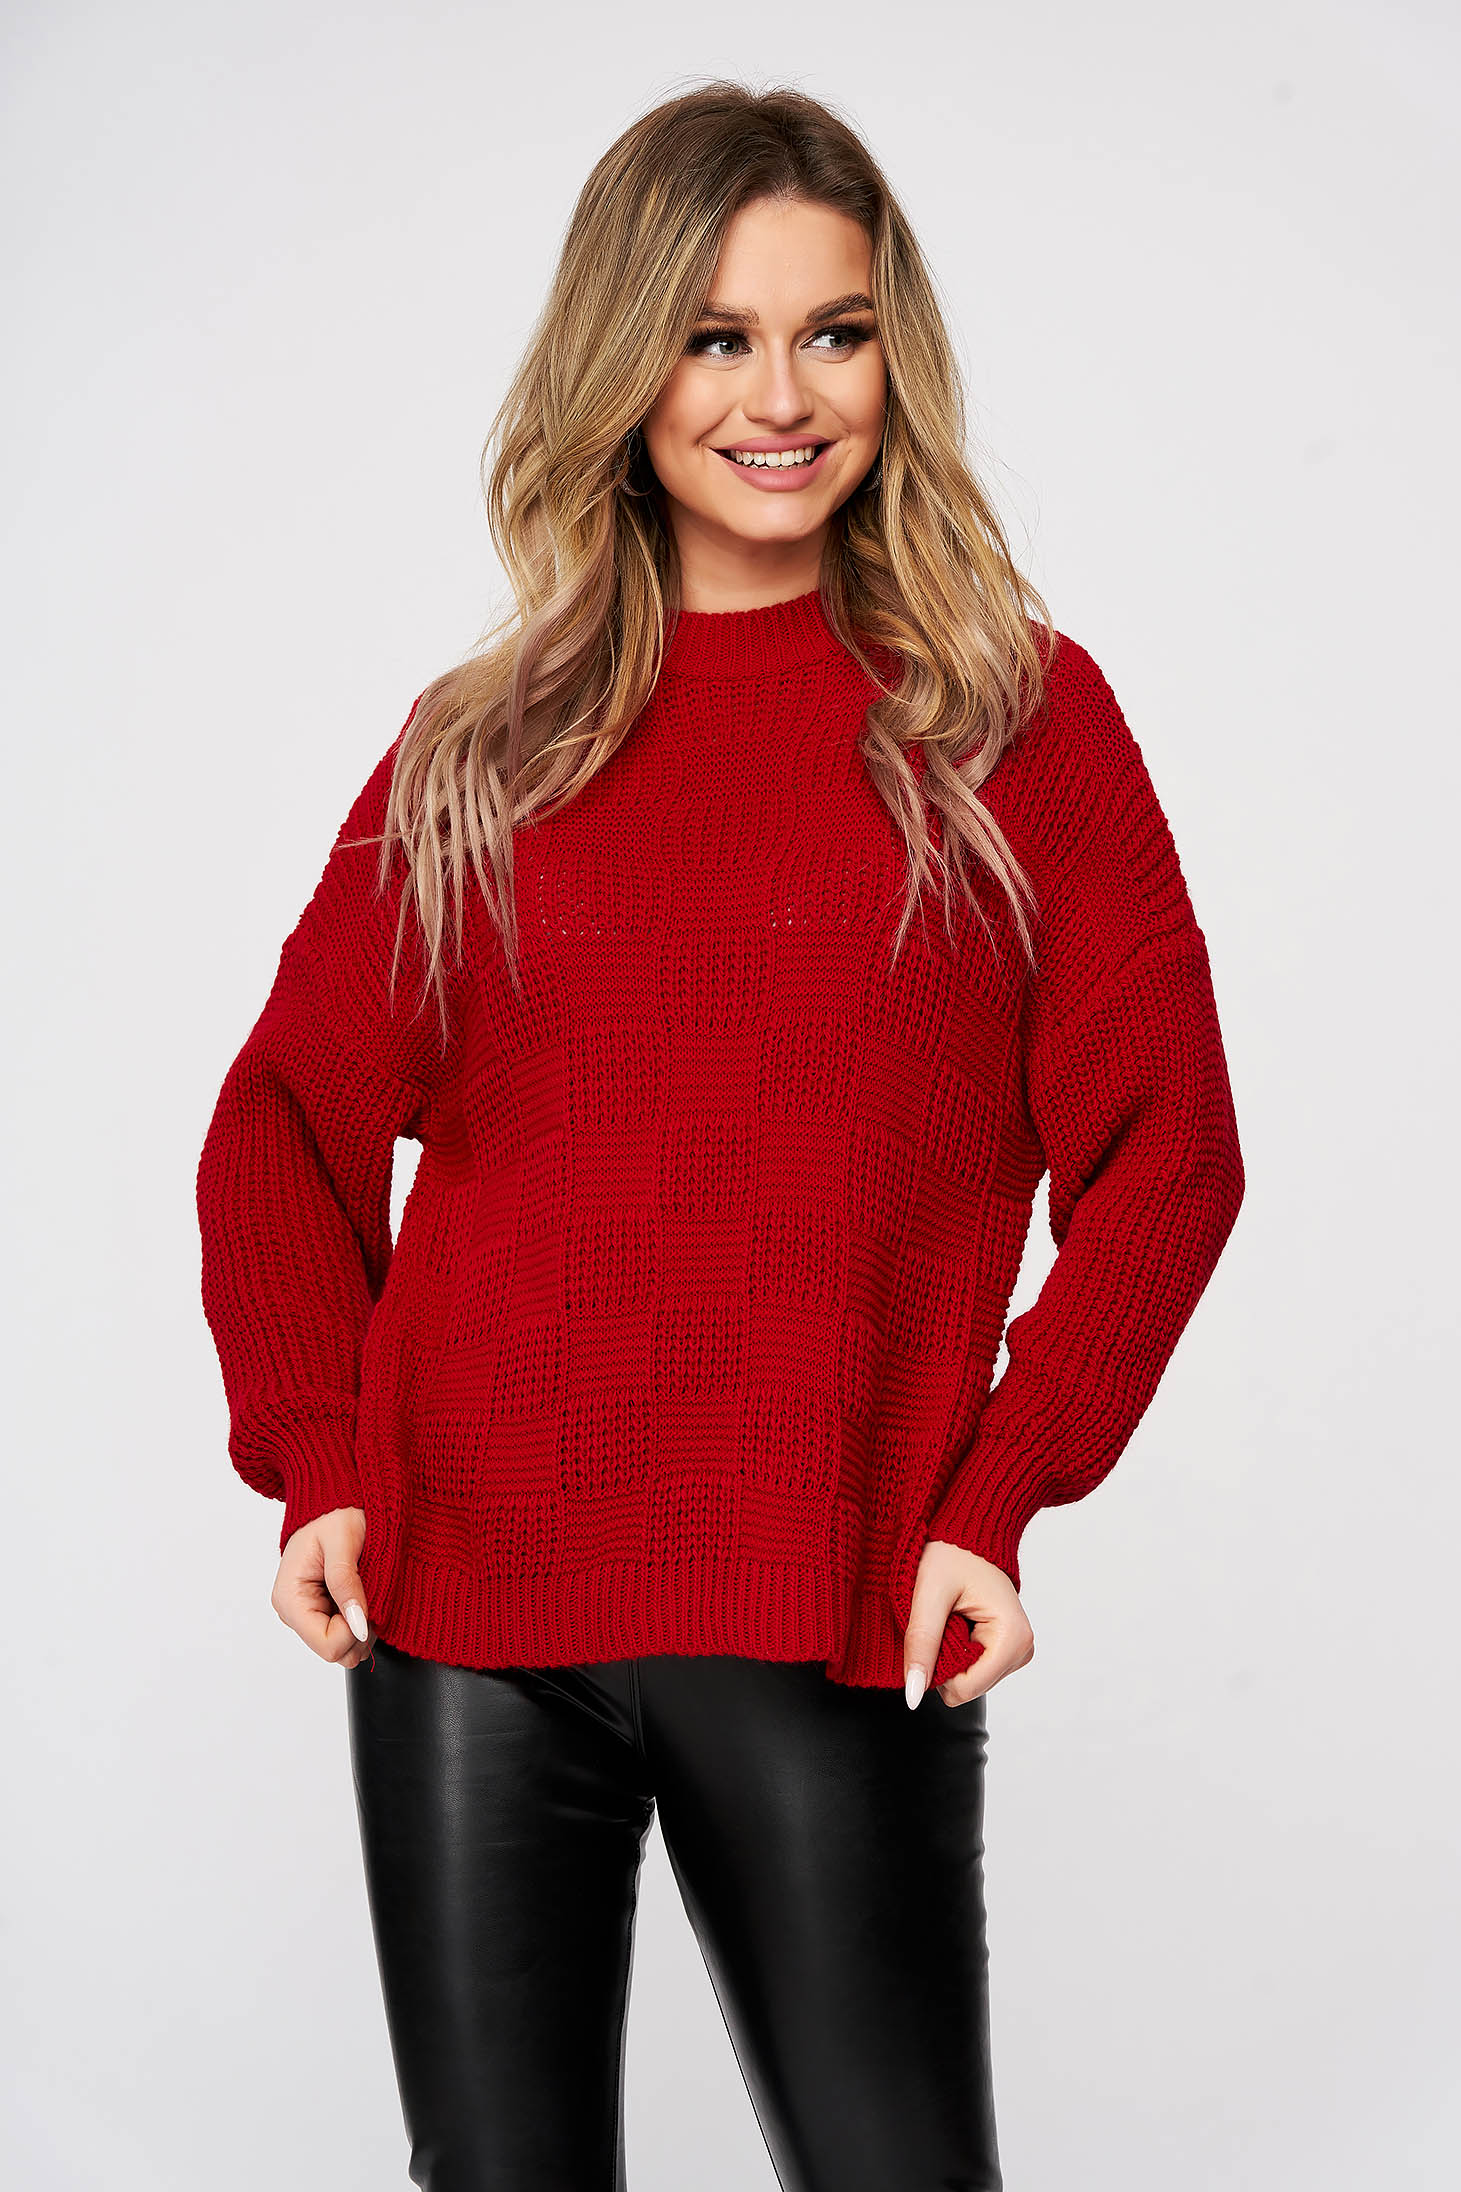 Red sweater knitted with seams inside the fabric flared casual